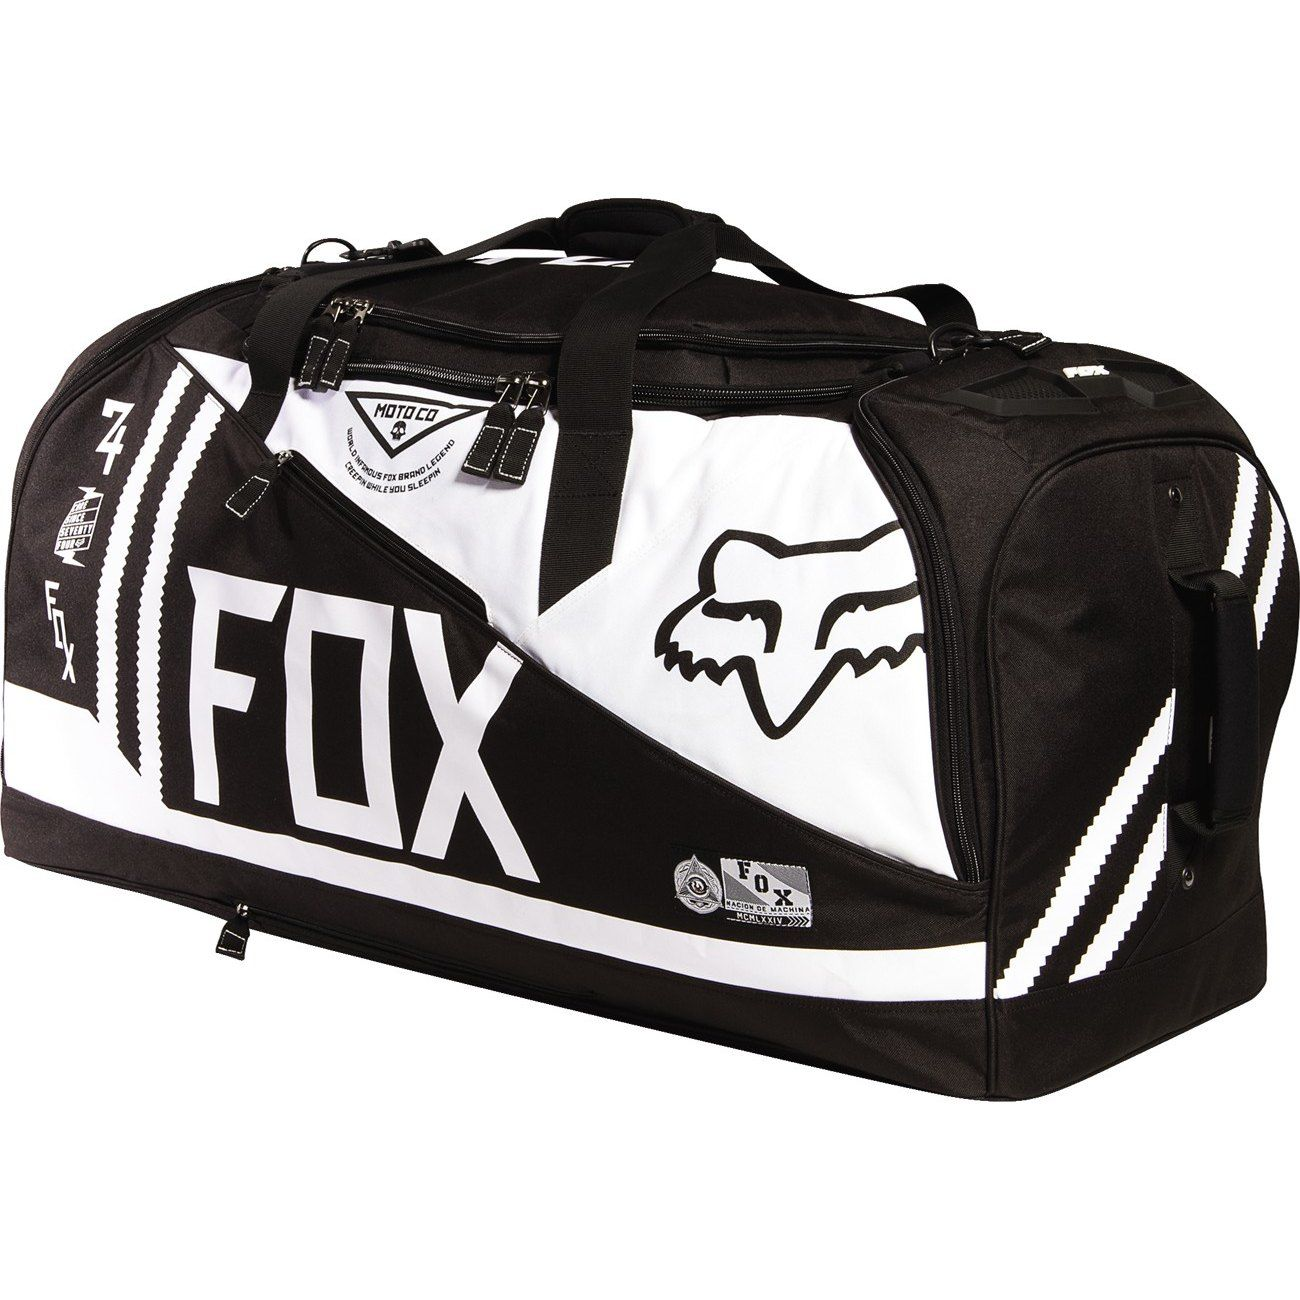 Fox Racing Podium Machina Gear Bag - Chaparral Motorsports -4484